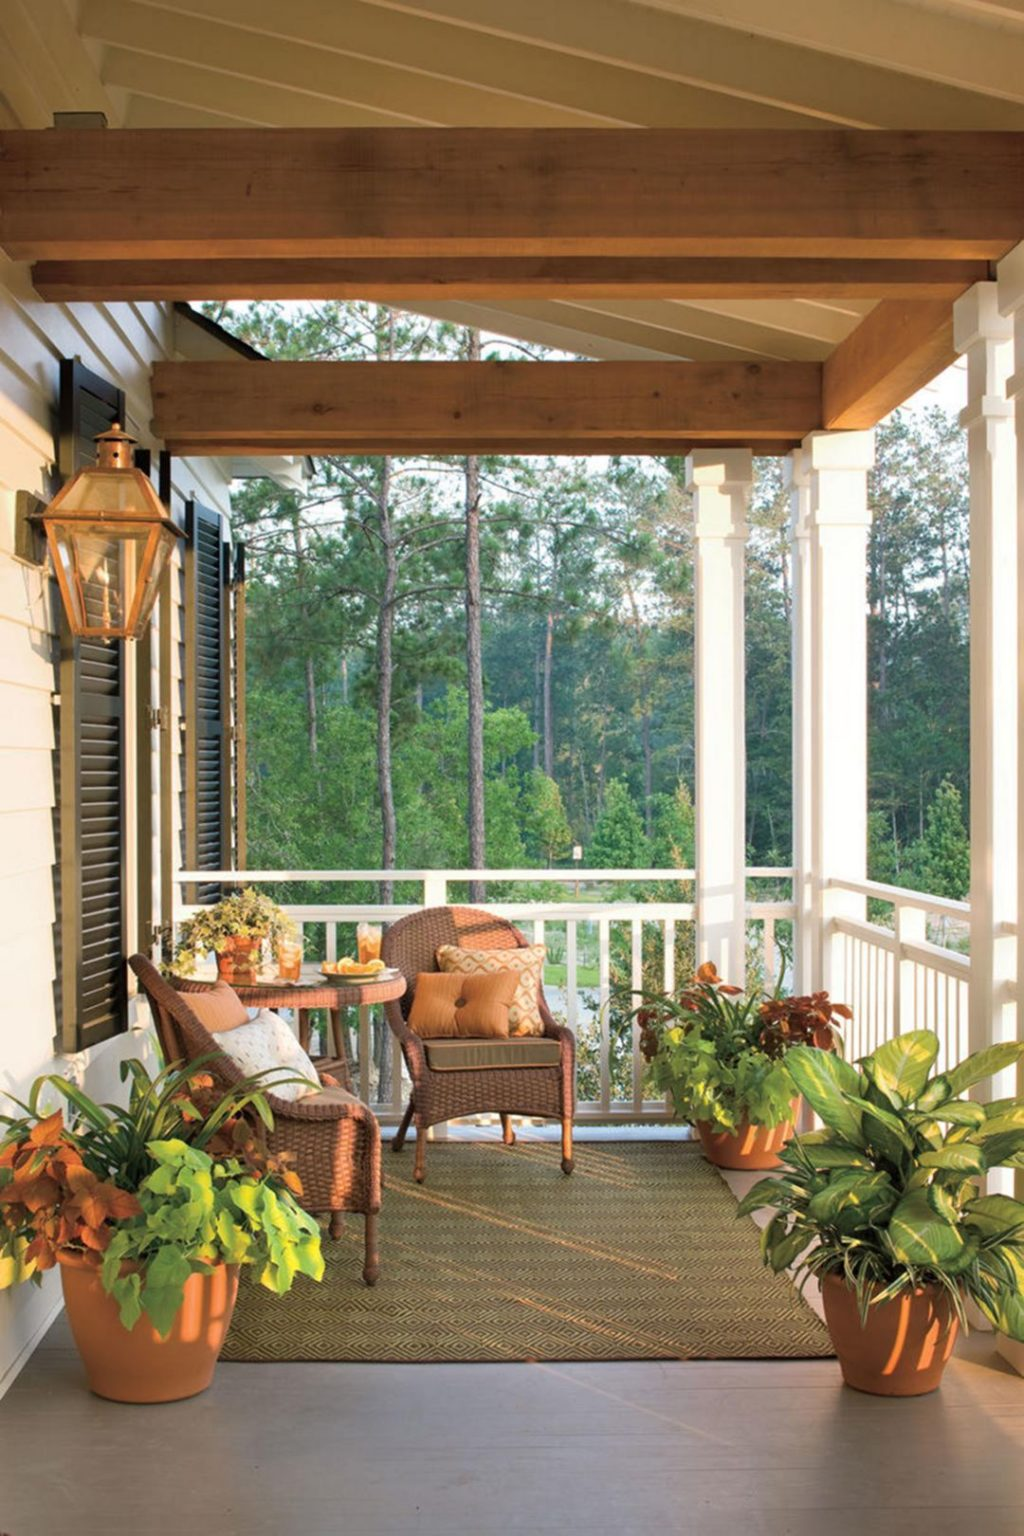 15 Porch Design Ideas That Will Have You Outside All Summer Long ☀️ porch design ideas 15 Porch Design Ideas That Will Have You Outside All Summer Long ☀️ 9 2